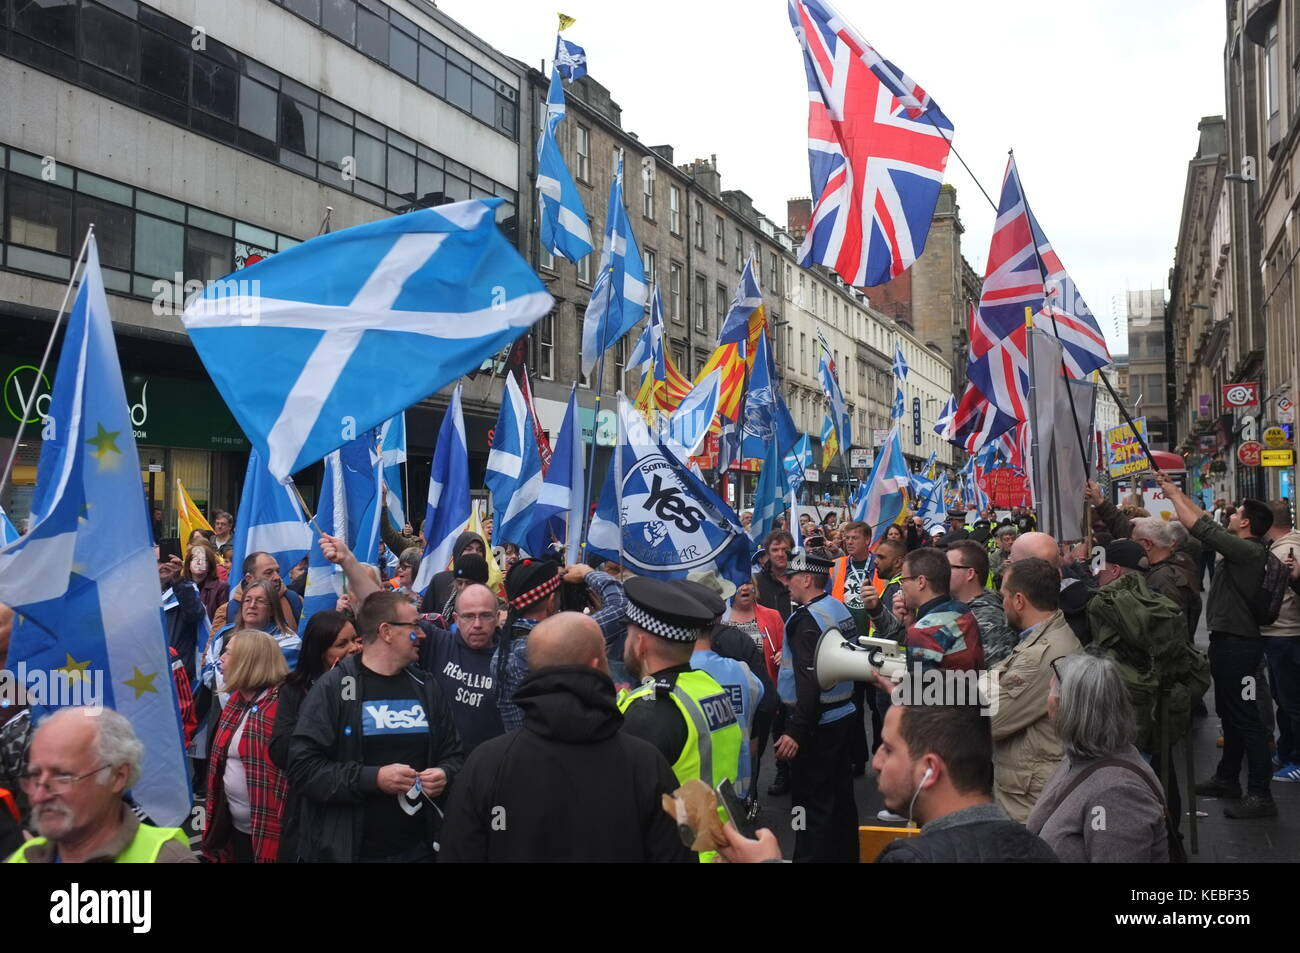 Pro-independence rally organised by Hope Over Fear, Glasgow, Scotland, United Kingdom. 16 September 2017. - Stock Image